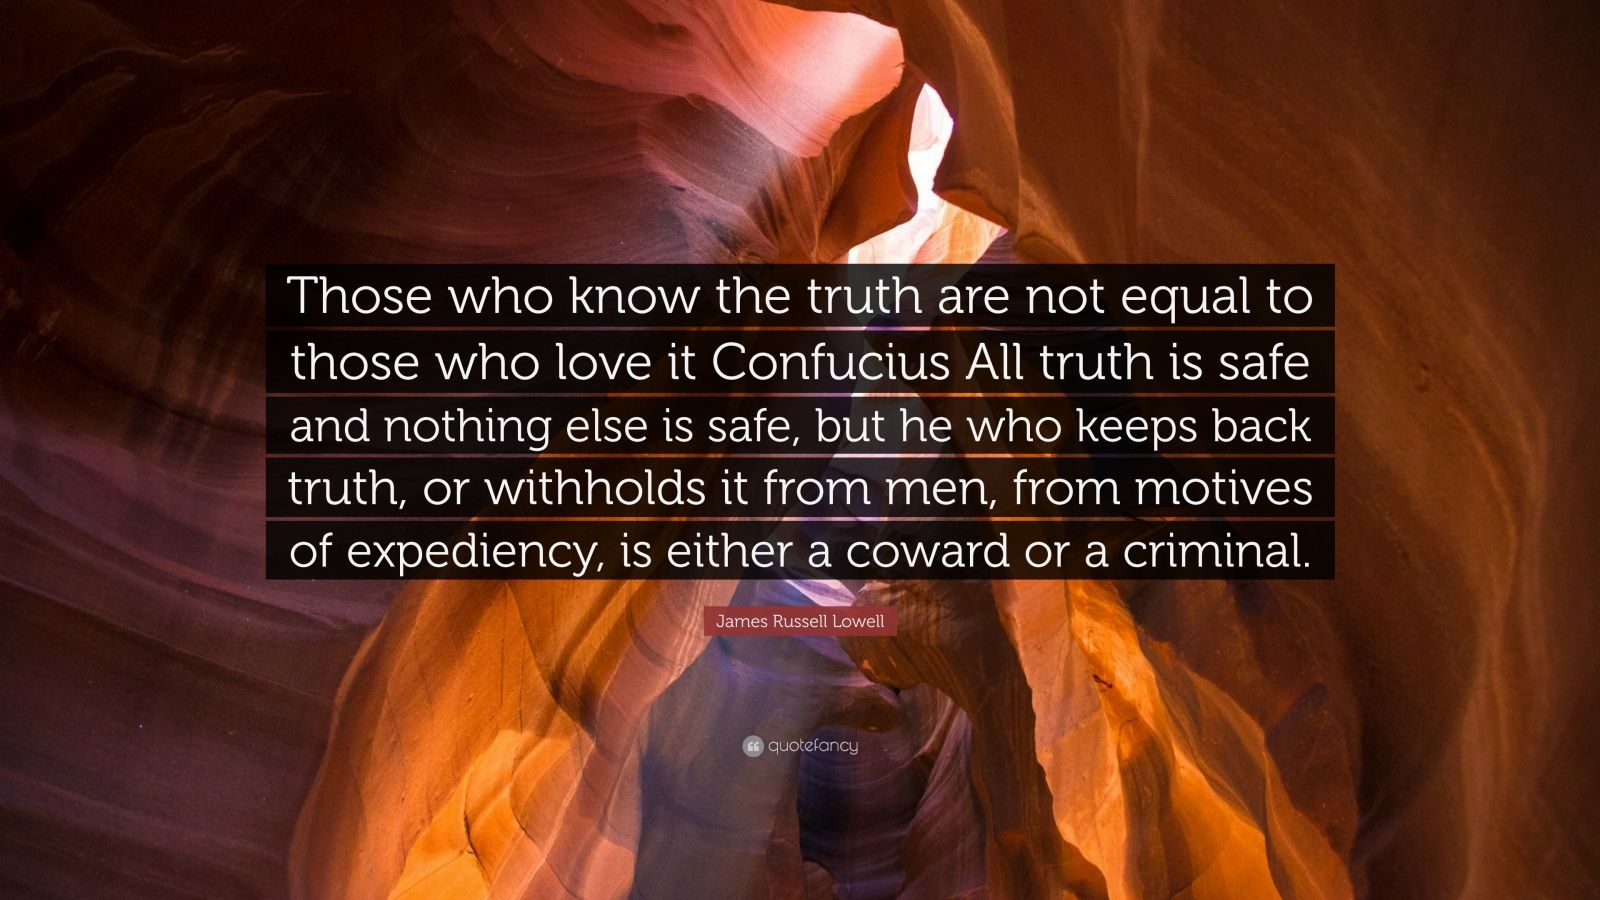 """James Russell Lowell Quote: """"Those who know the truth are not equal to those who love it Confucius All truth is safe and nothing else is safe, but he who keeps back truth, or withholds it from men, from motives of expediency, is either a coward or a criminal."""""""